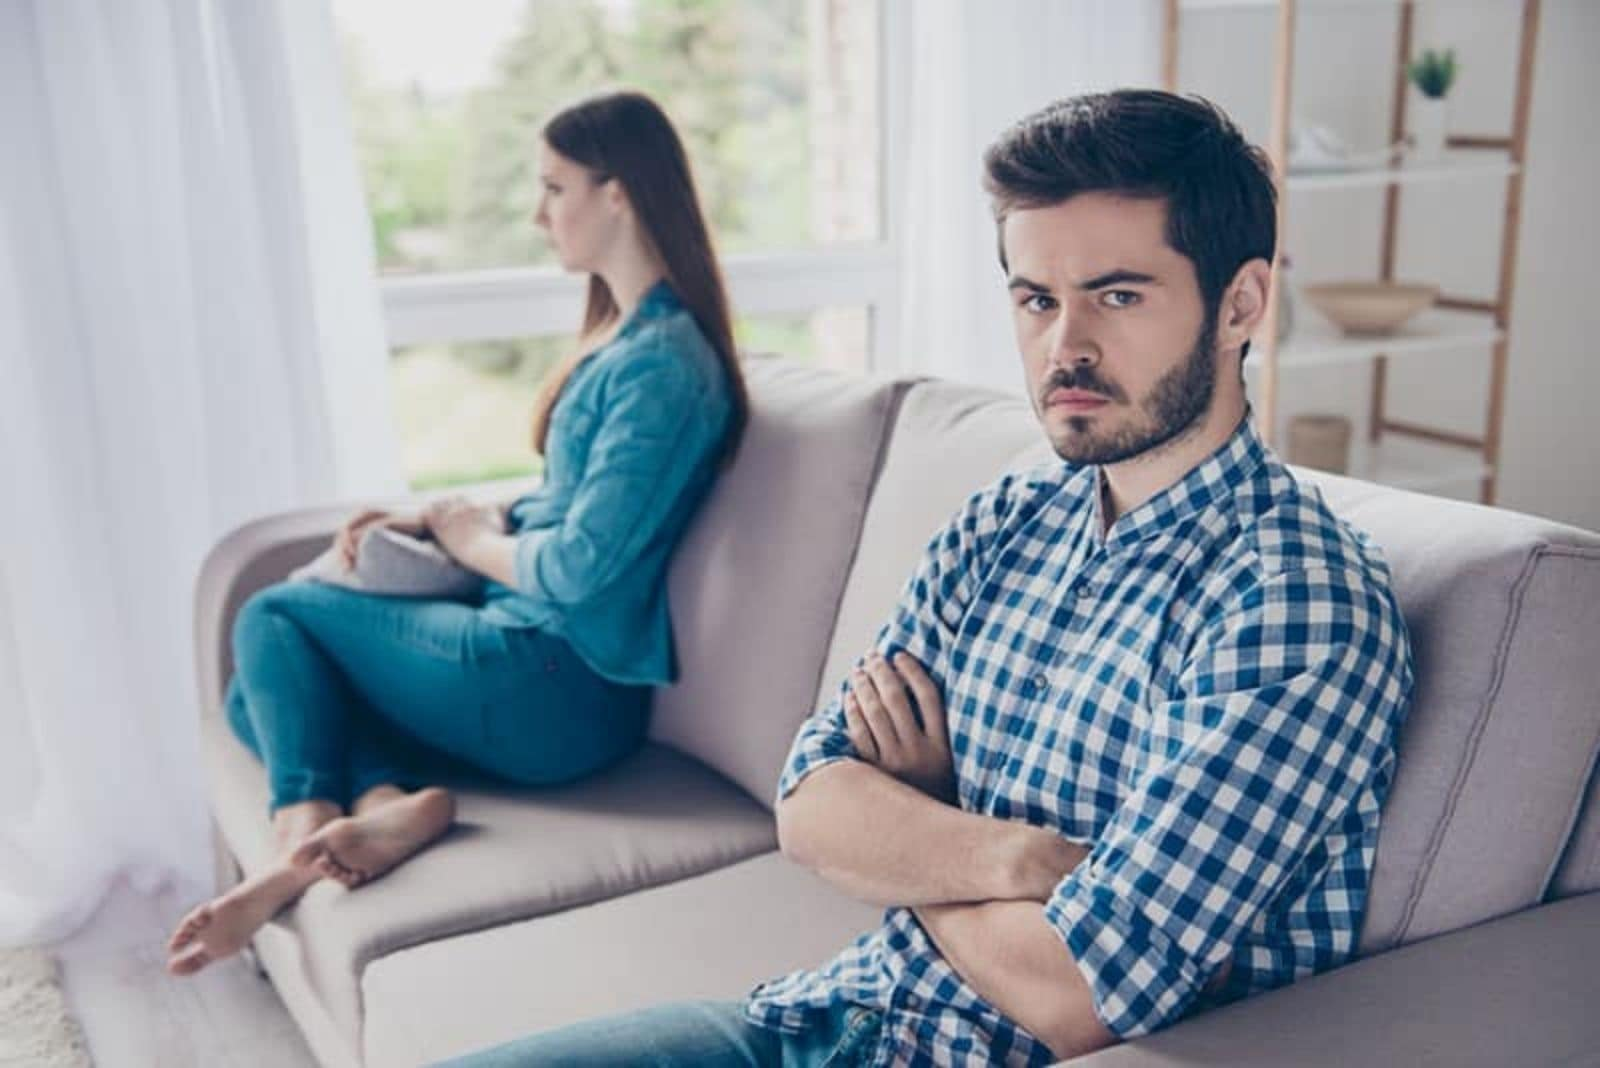 the woman turned her back on the man as they sat on the couch